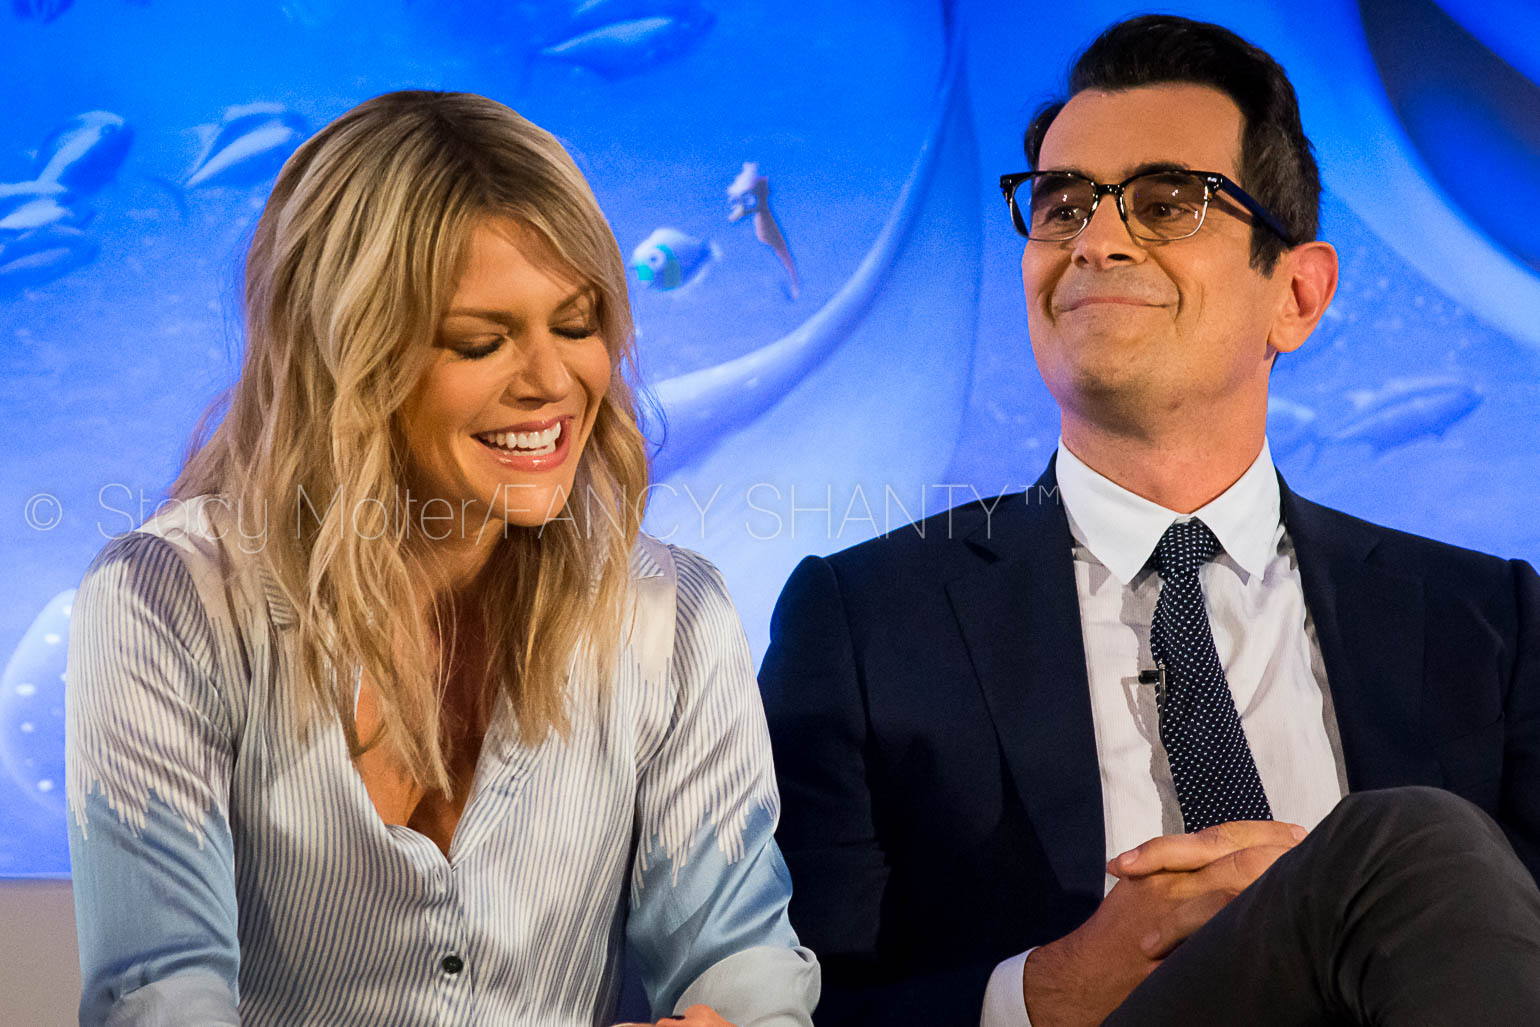 Kaitlin Olson & Ty Burrell - Finding Dory Press Conference